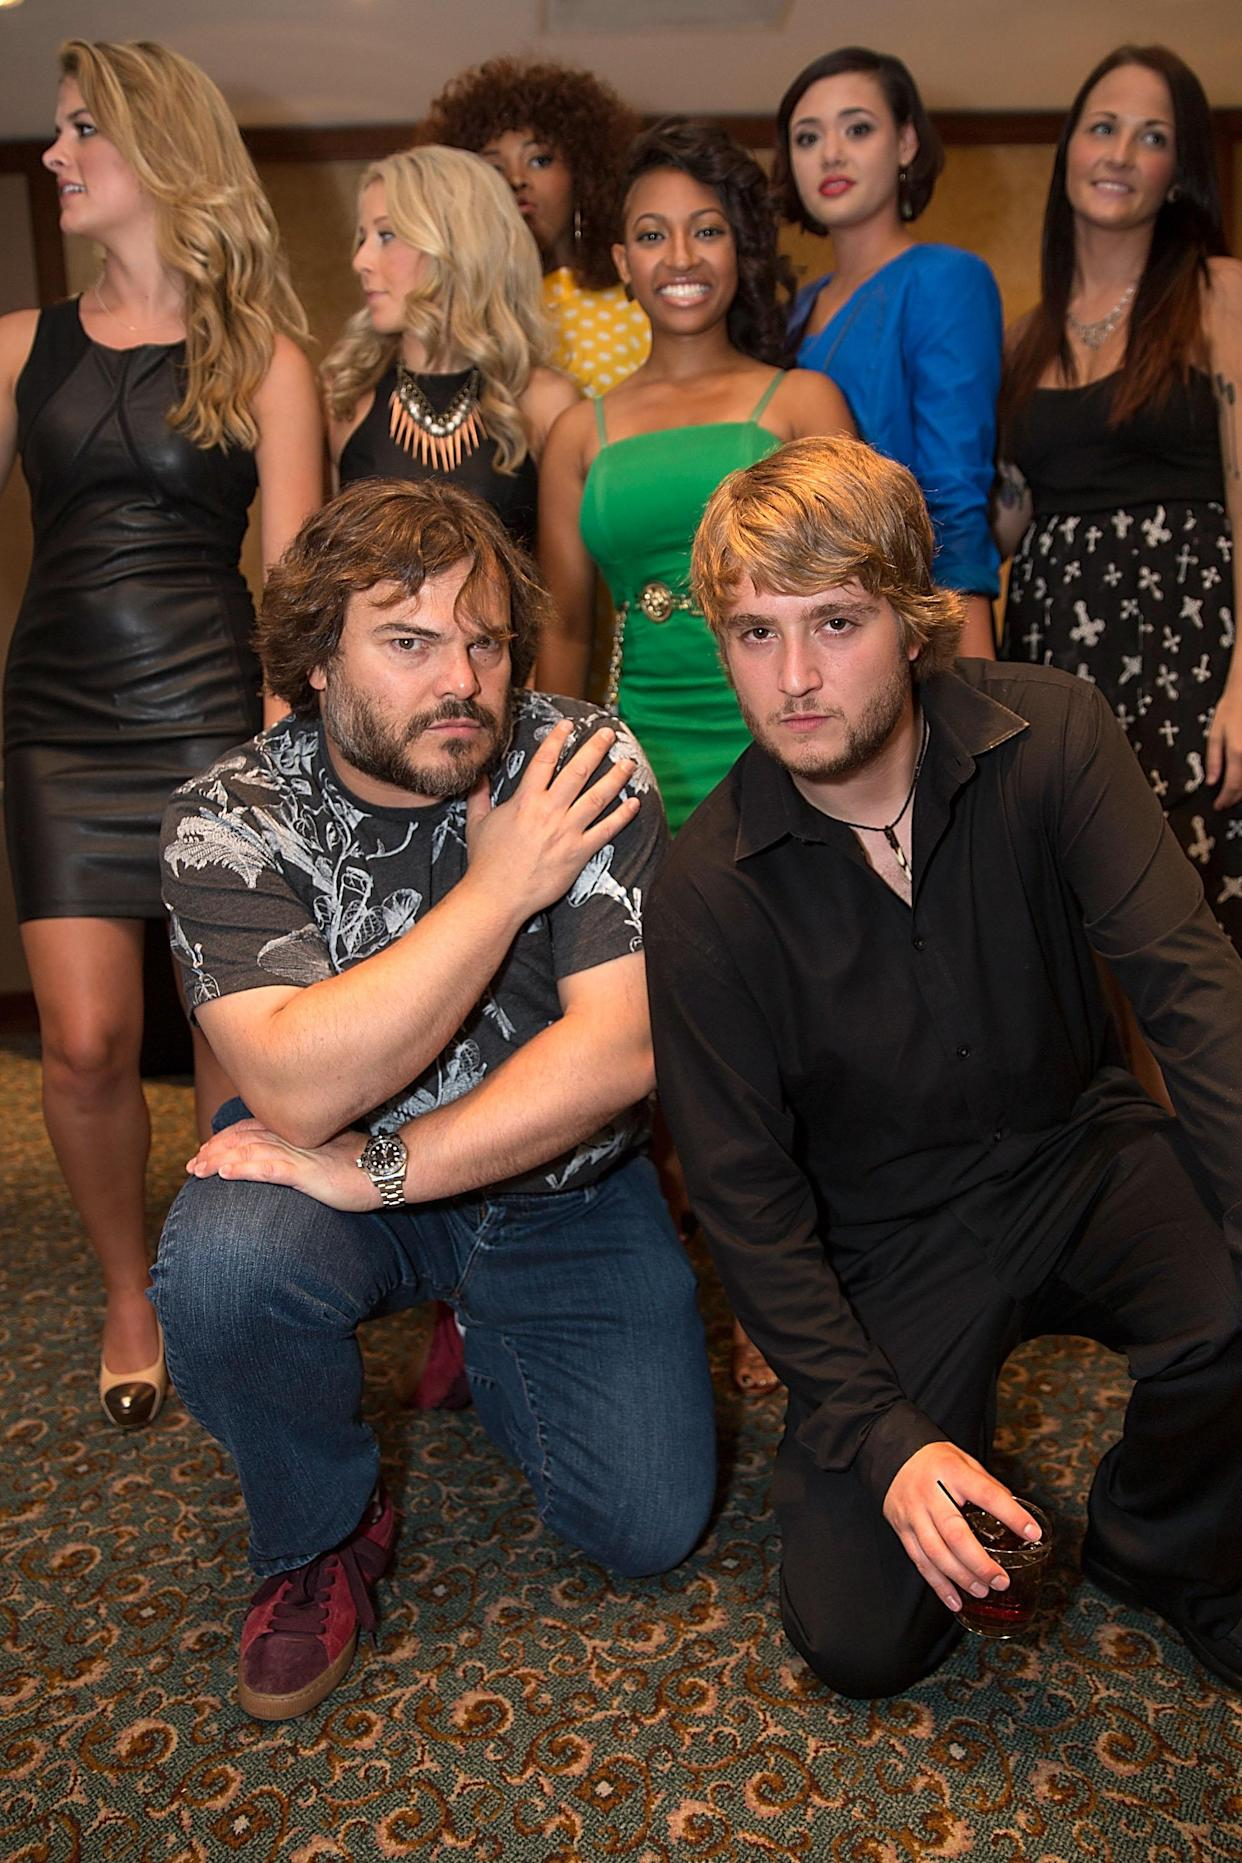 AUSTIN, TX - AUGUST 29:  Actor Jack Black and Kevin Alexander Clark attend the School Of Rock 10-Year cast reception at Omni Downtown on August 29, 2013 in Austin, Texas.  (Photo by Rick Kern/Getty Images)